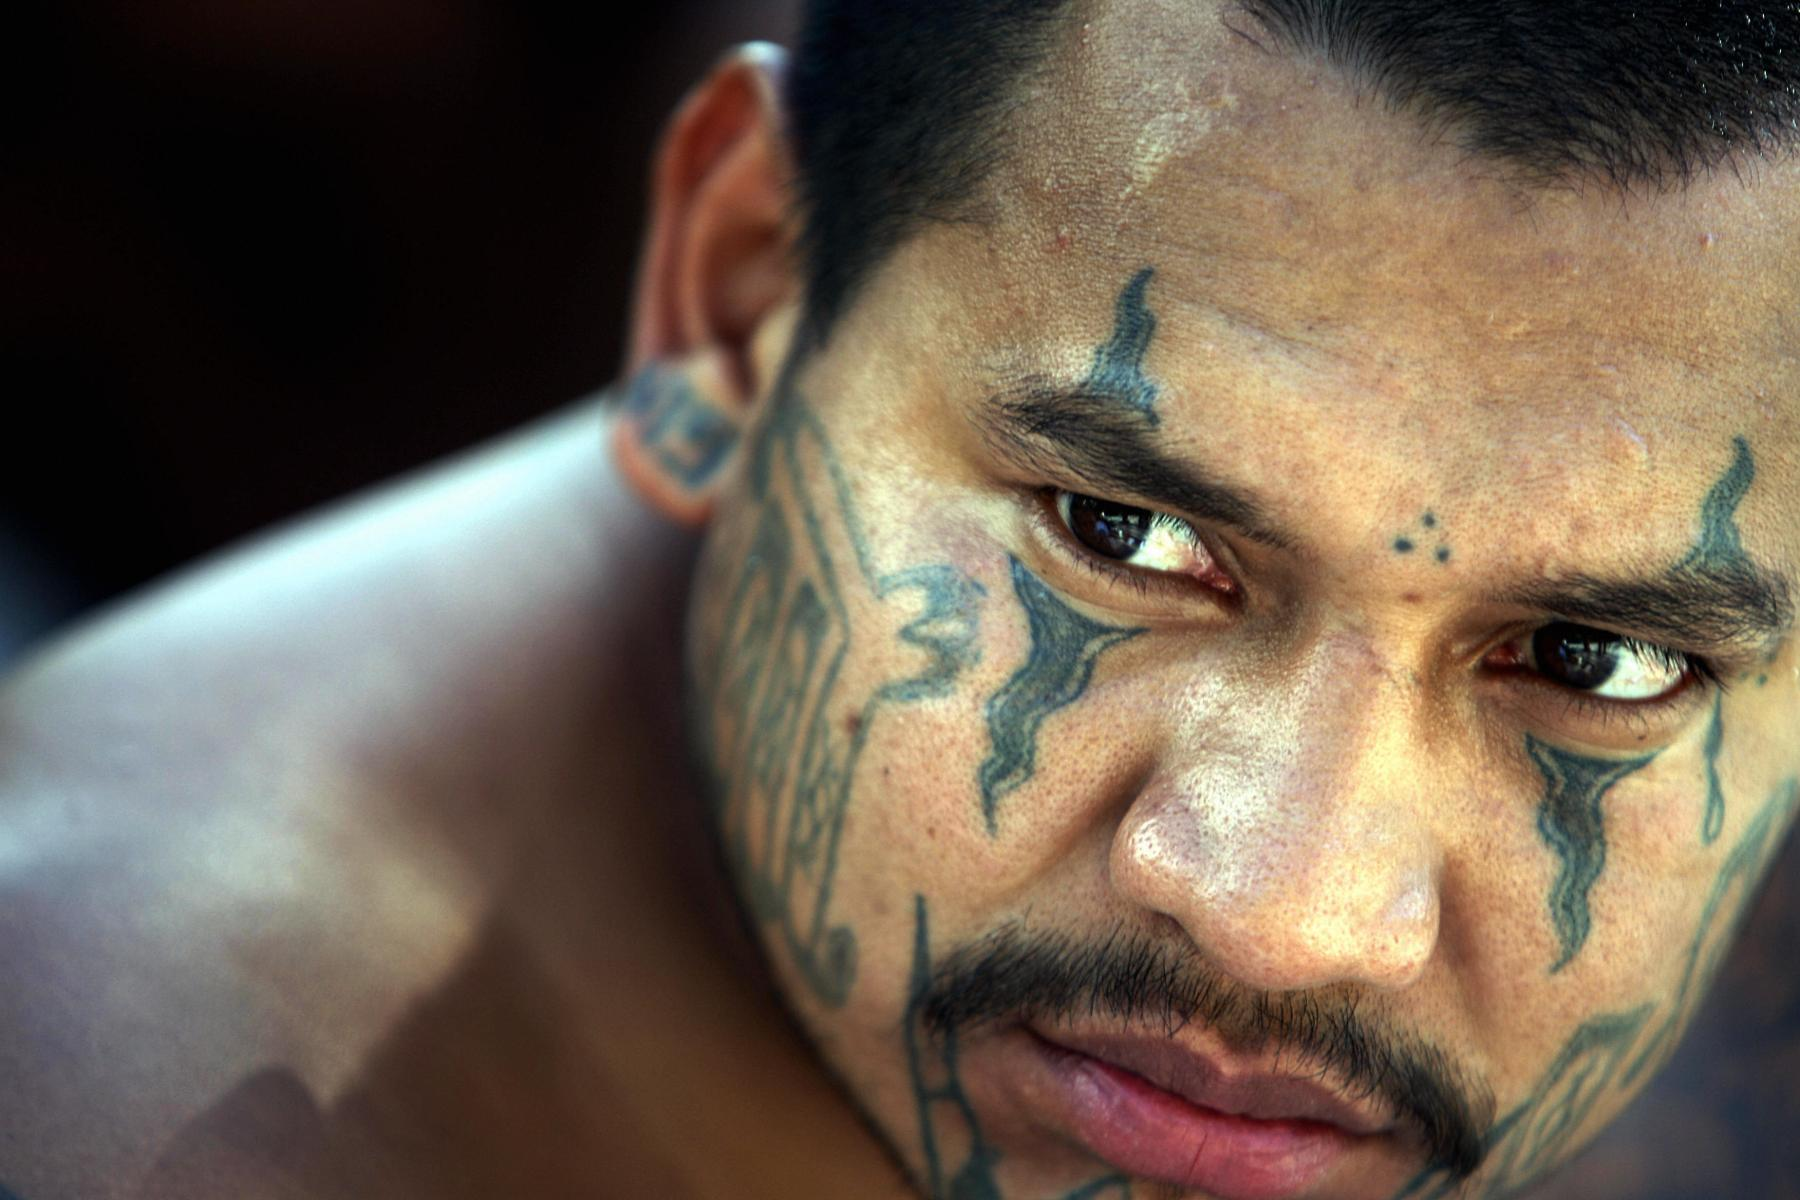 """A member of the """"Mara Salvatrucha"""" gang is presented to the press in San Salvador on September 7th, 2006, after his arrest last night. (Yuri Cortez/AFP/Getty Images)"""